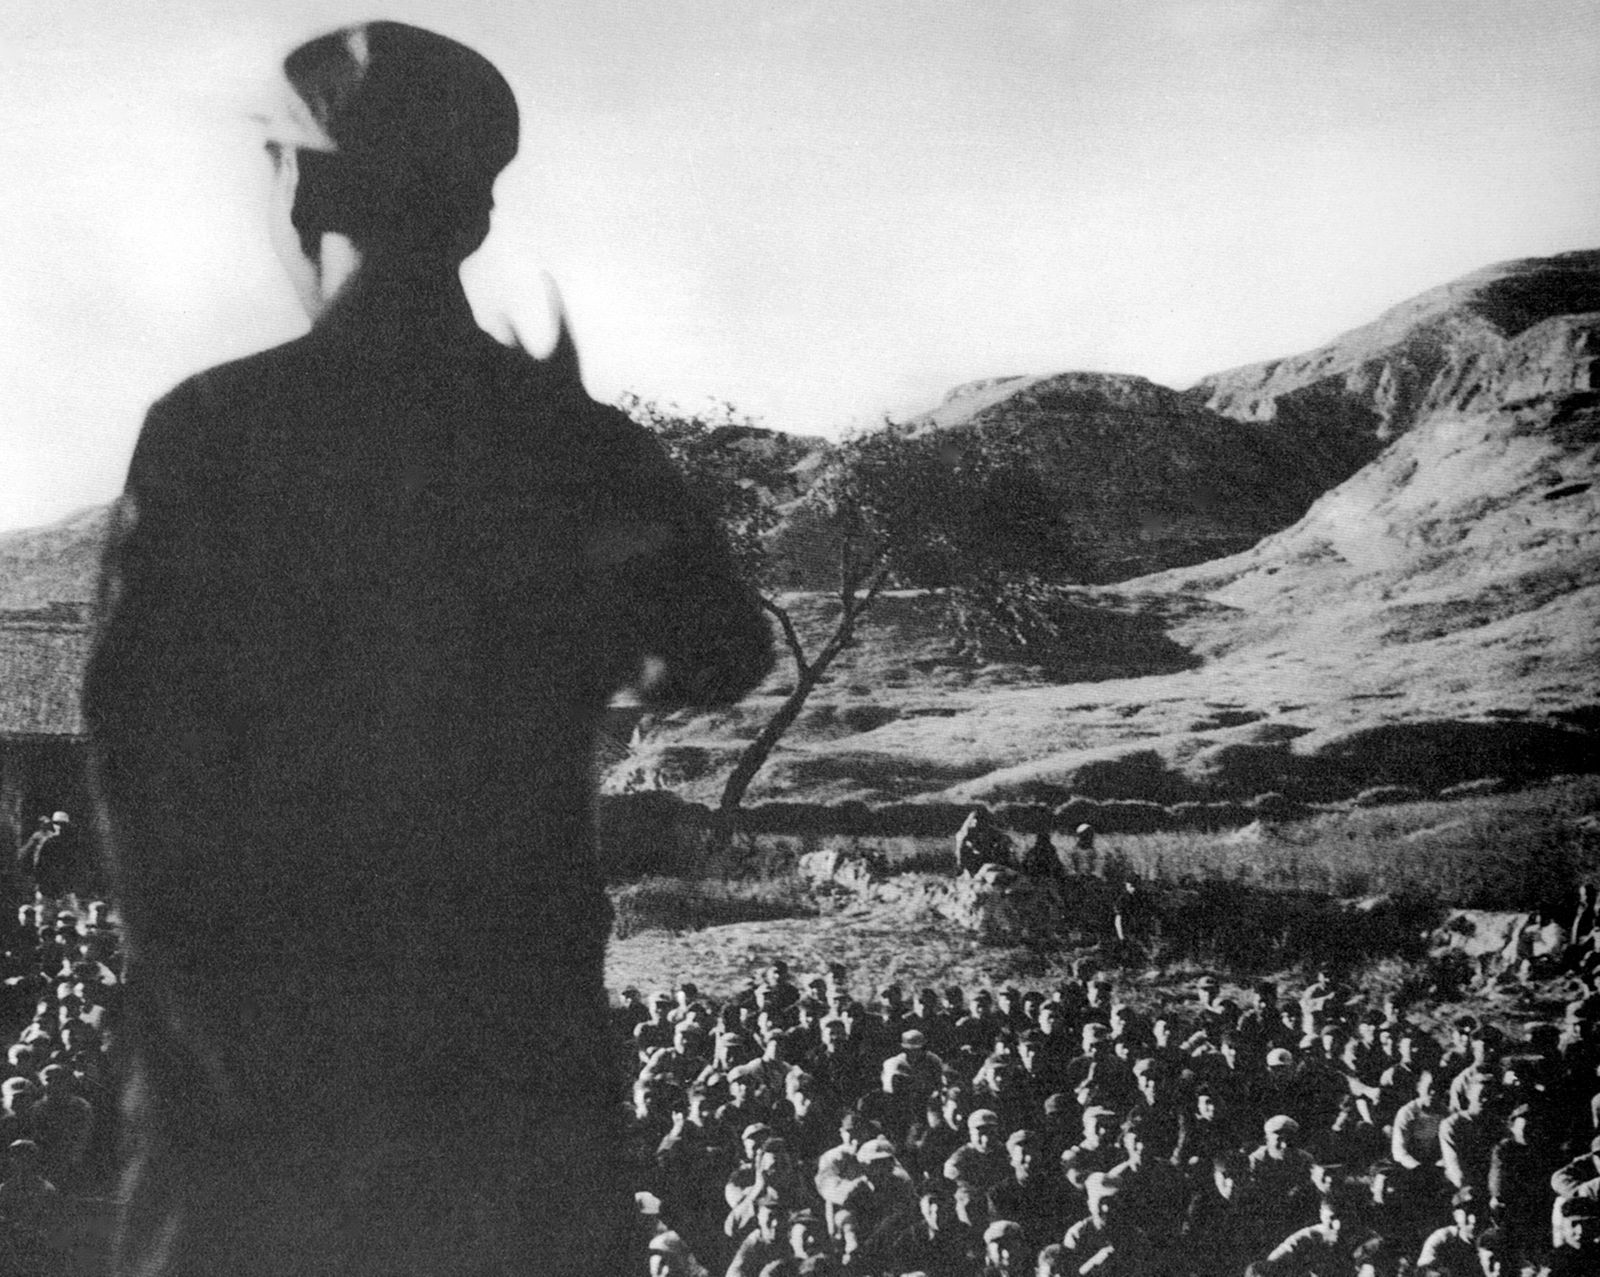 The Long March (simplified Chinese: é ¿a¾; traditional Chinese: é ·a¾; pinyin: ChangzhÄ ng) was a military retreat und